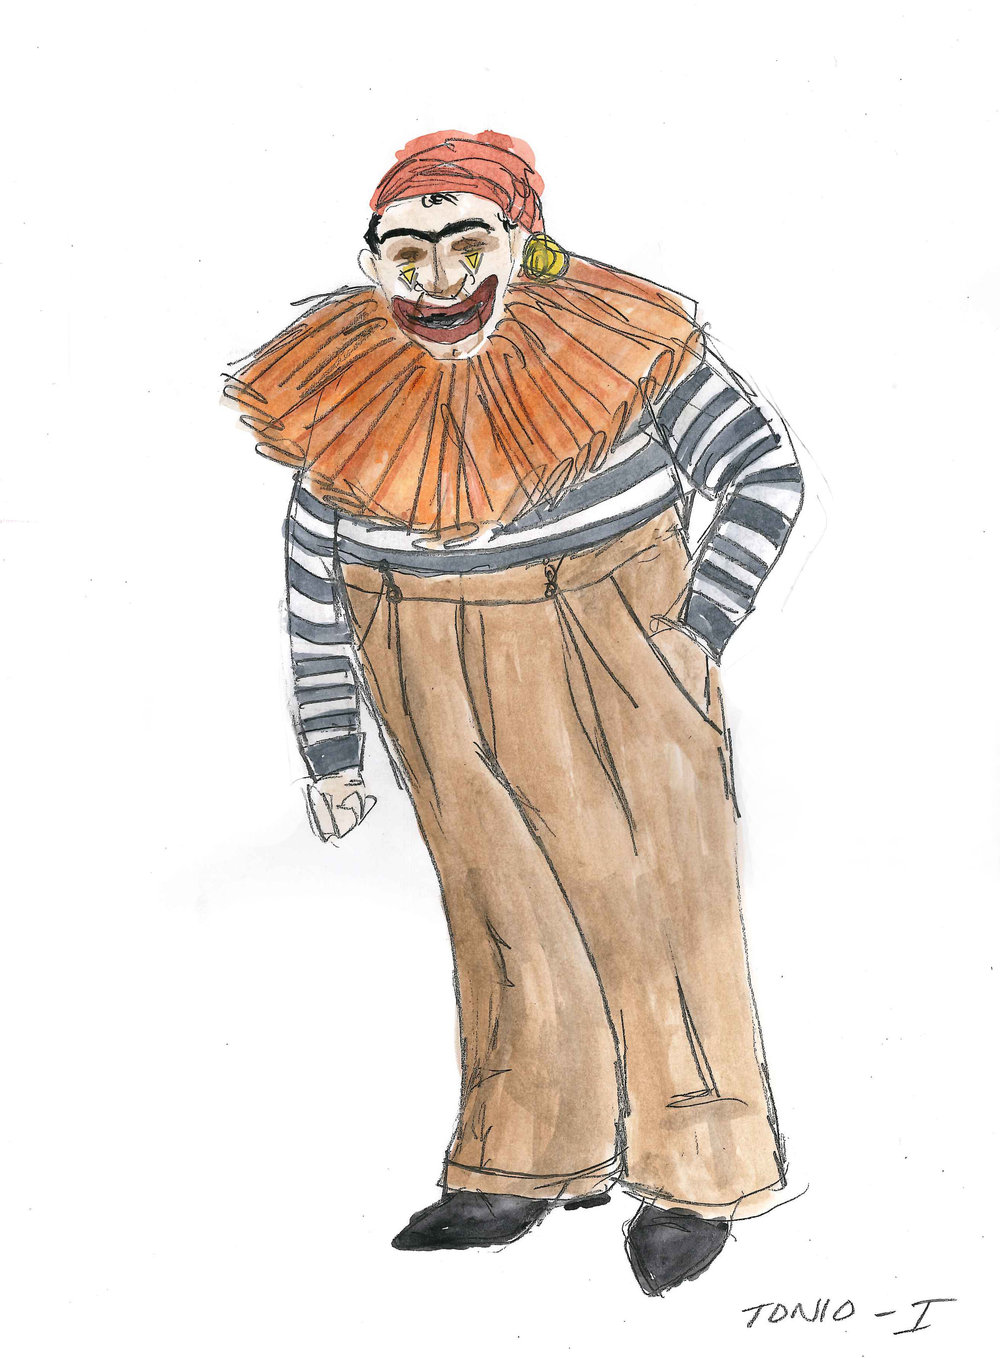 Sketch of Tonio - Look 1 for  Pagliacci,  composed by Ruggero Leoncavallo.  Photo Courtesy of Grier Coleman.